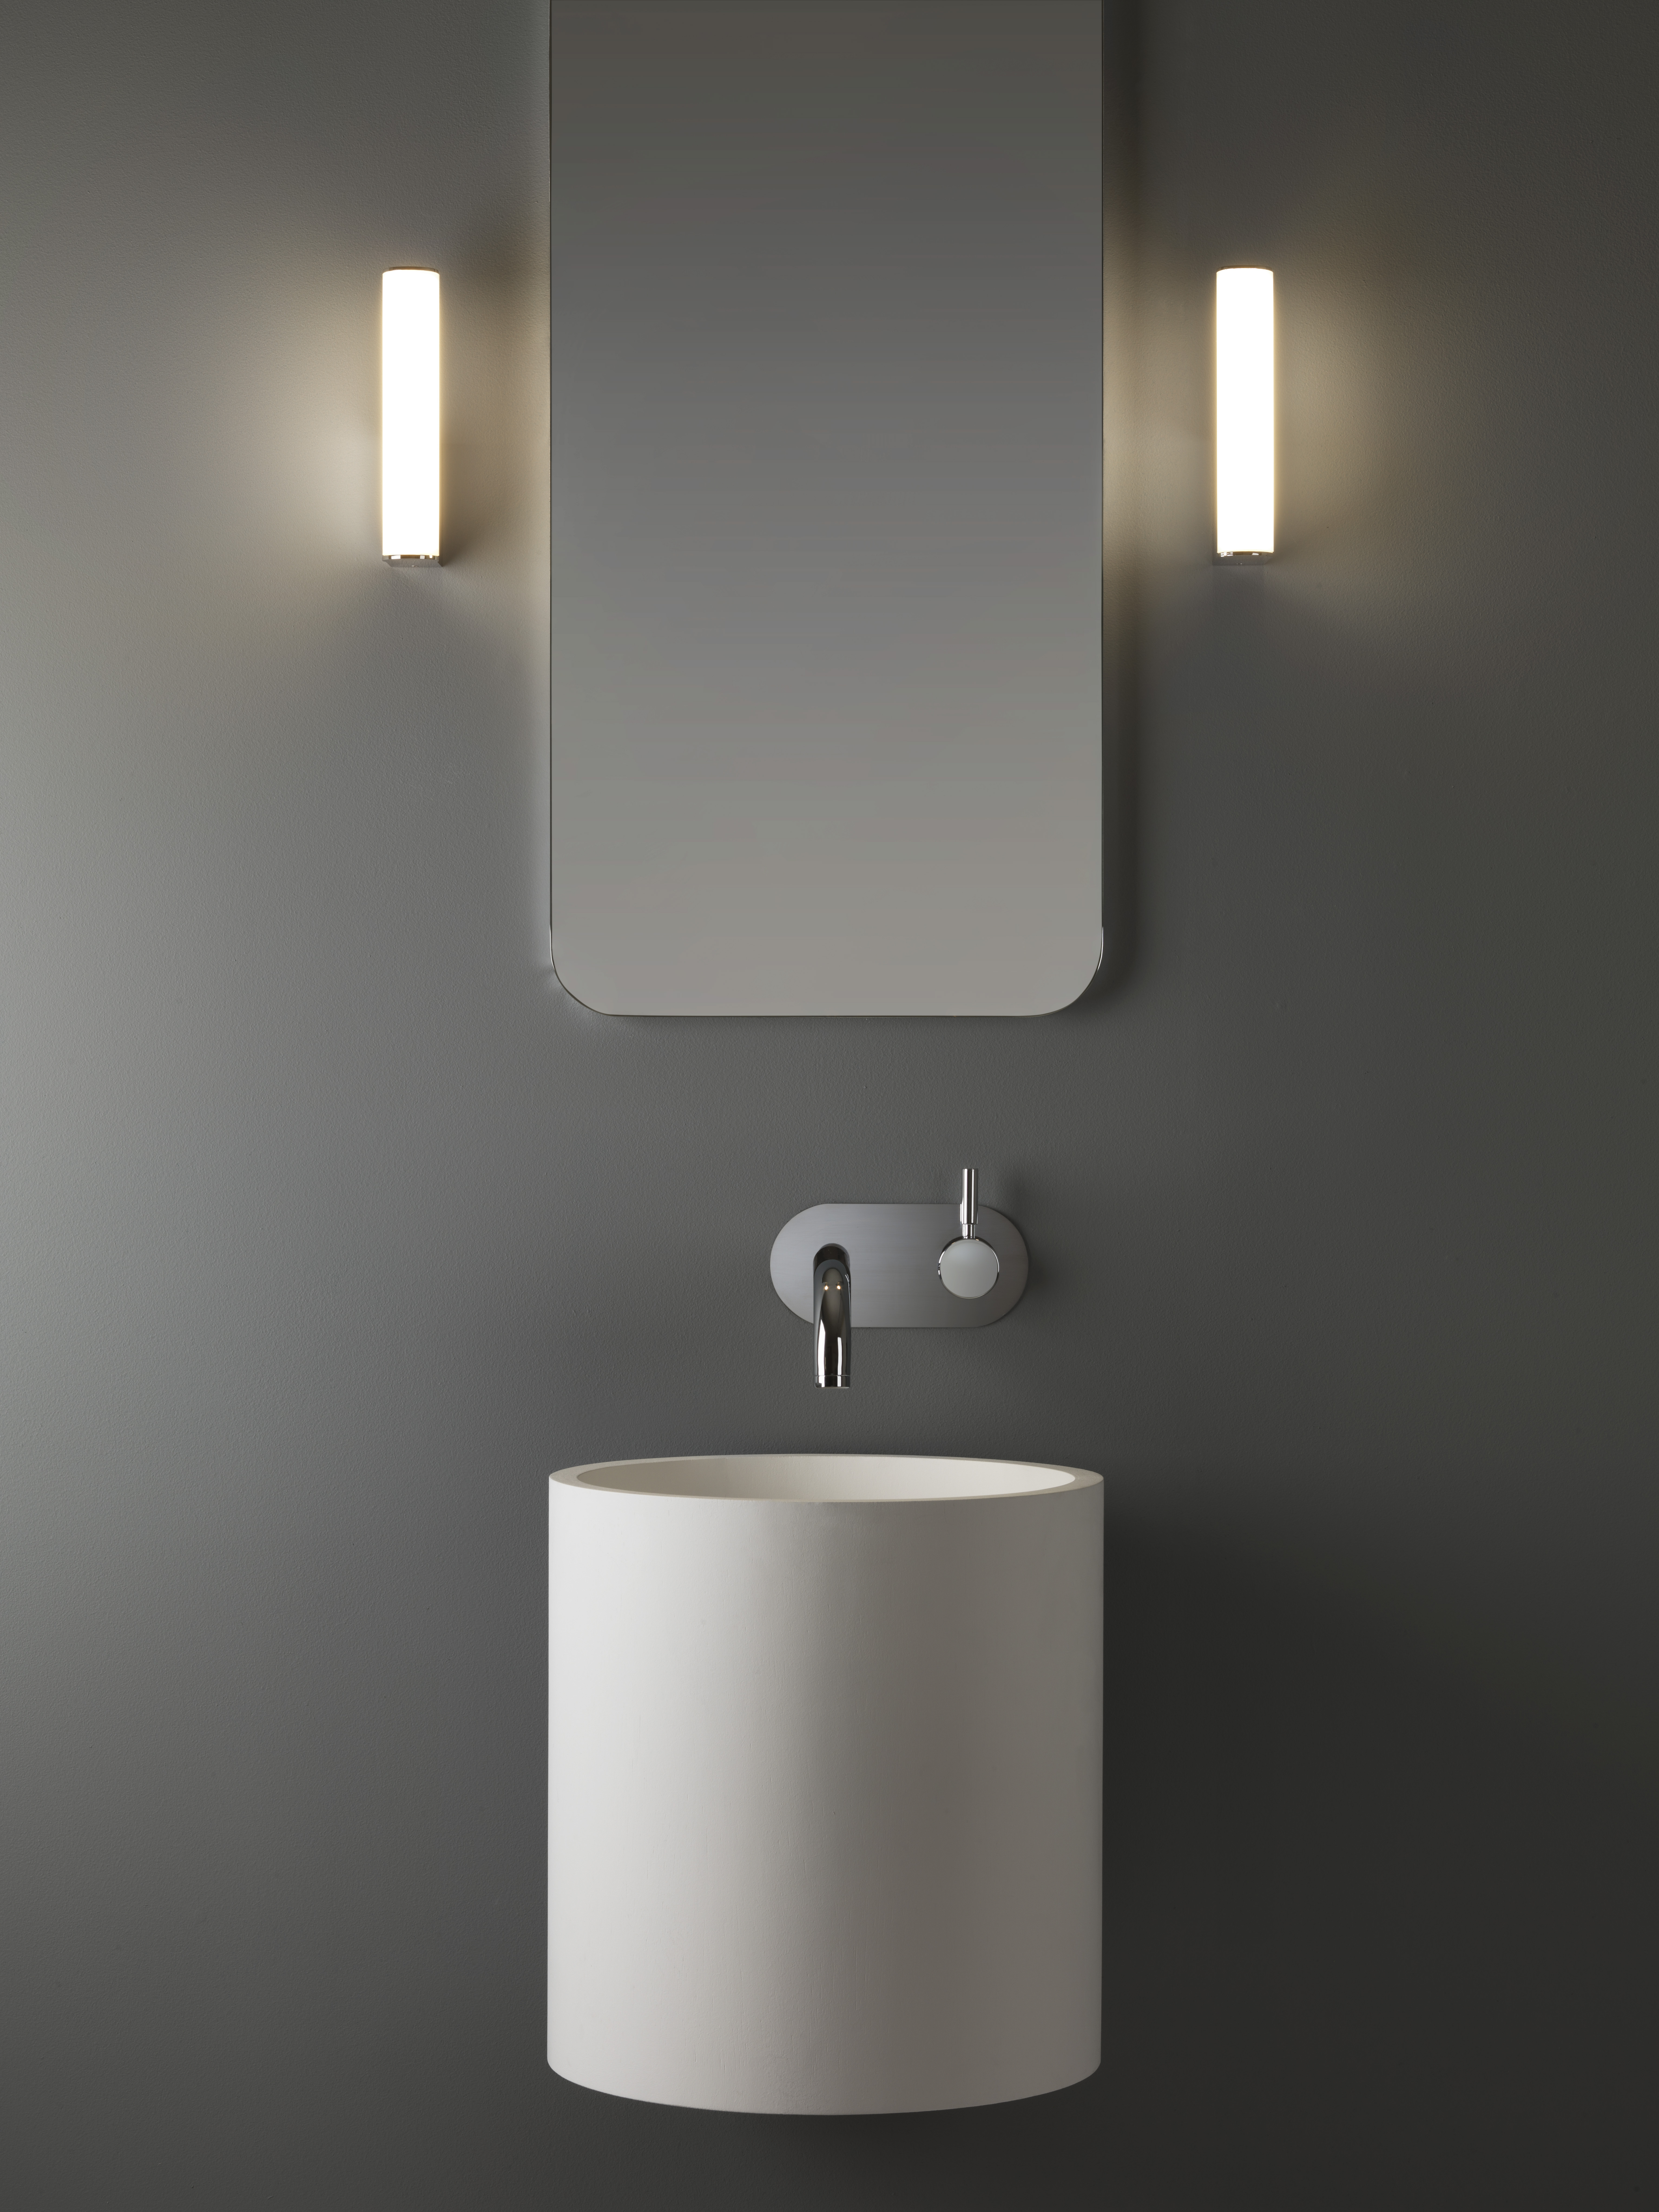 Ask An Expert What Type Of Lighting Is Best For The Bath